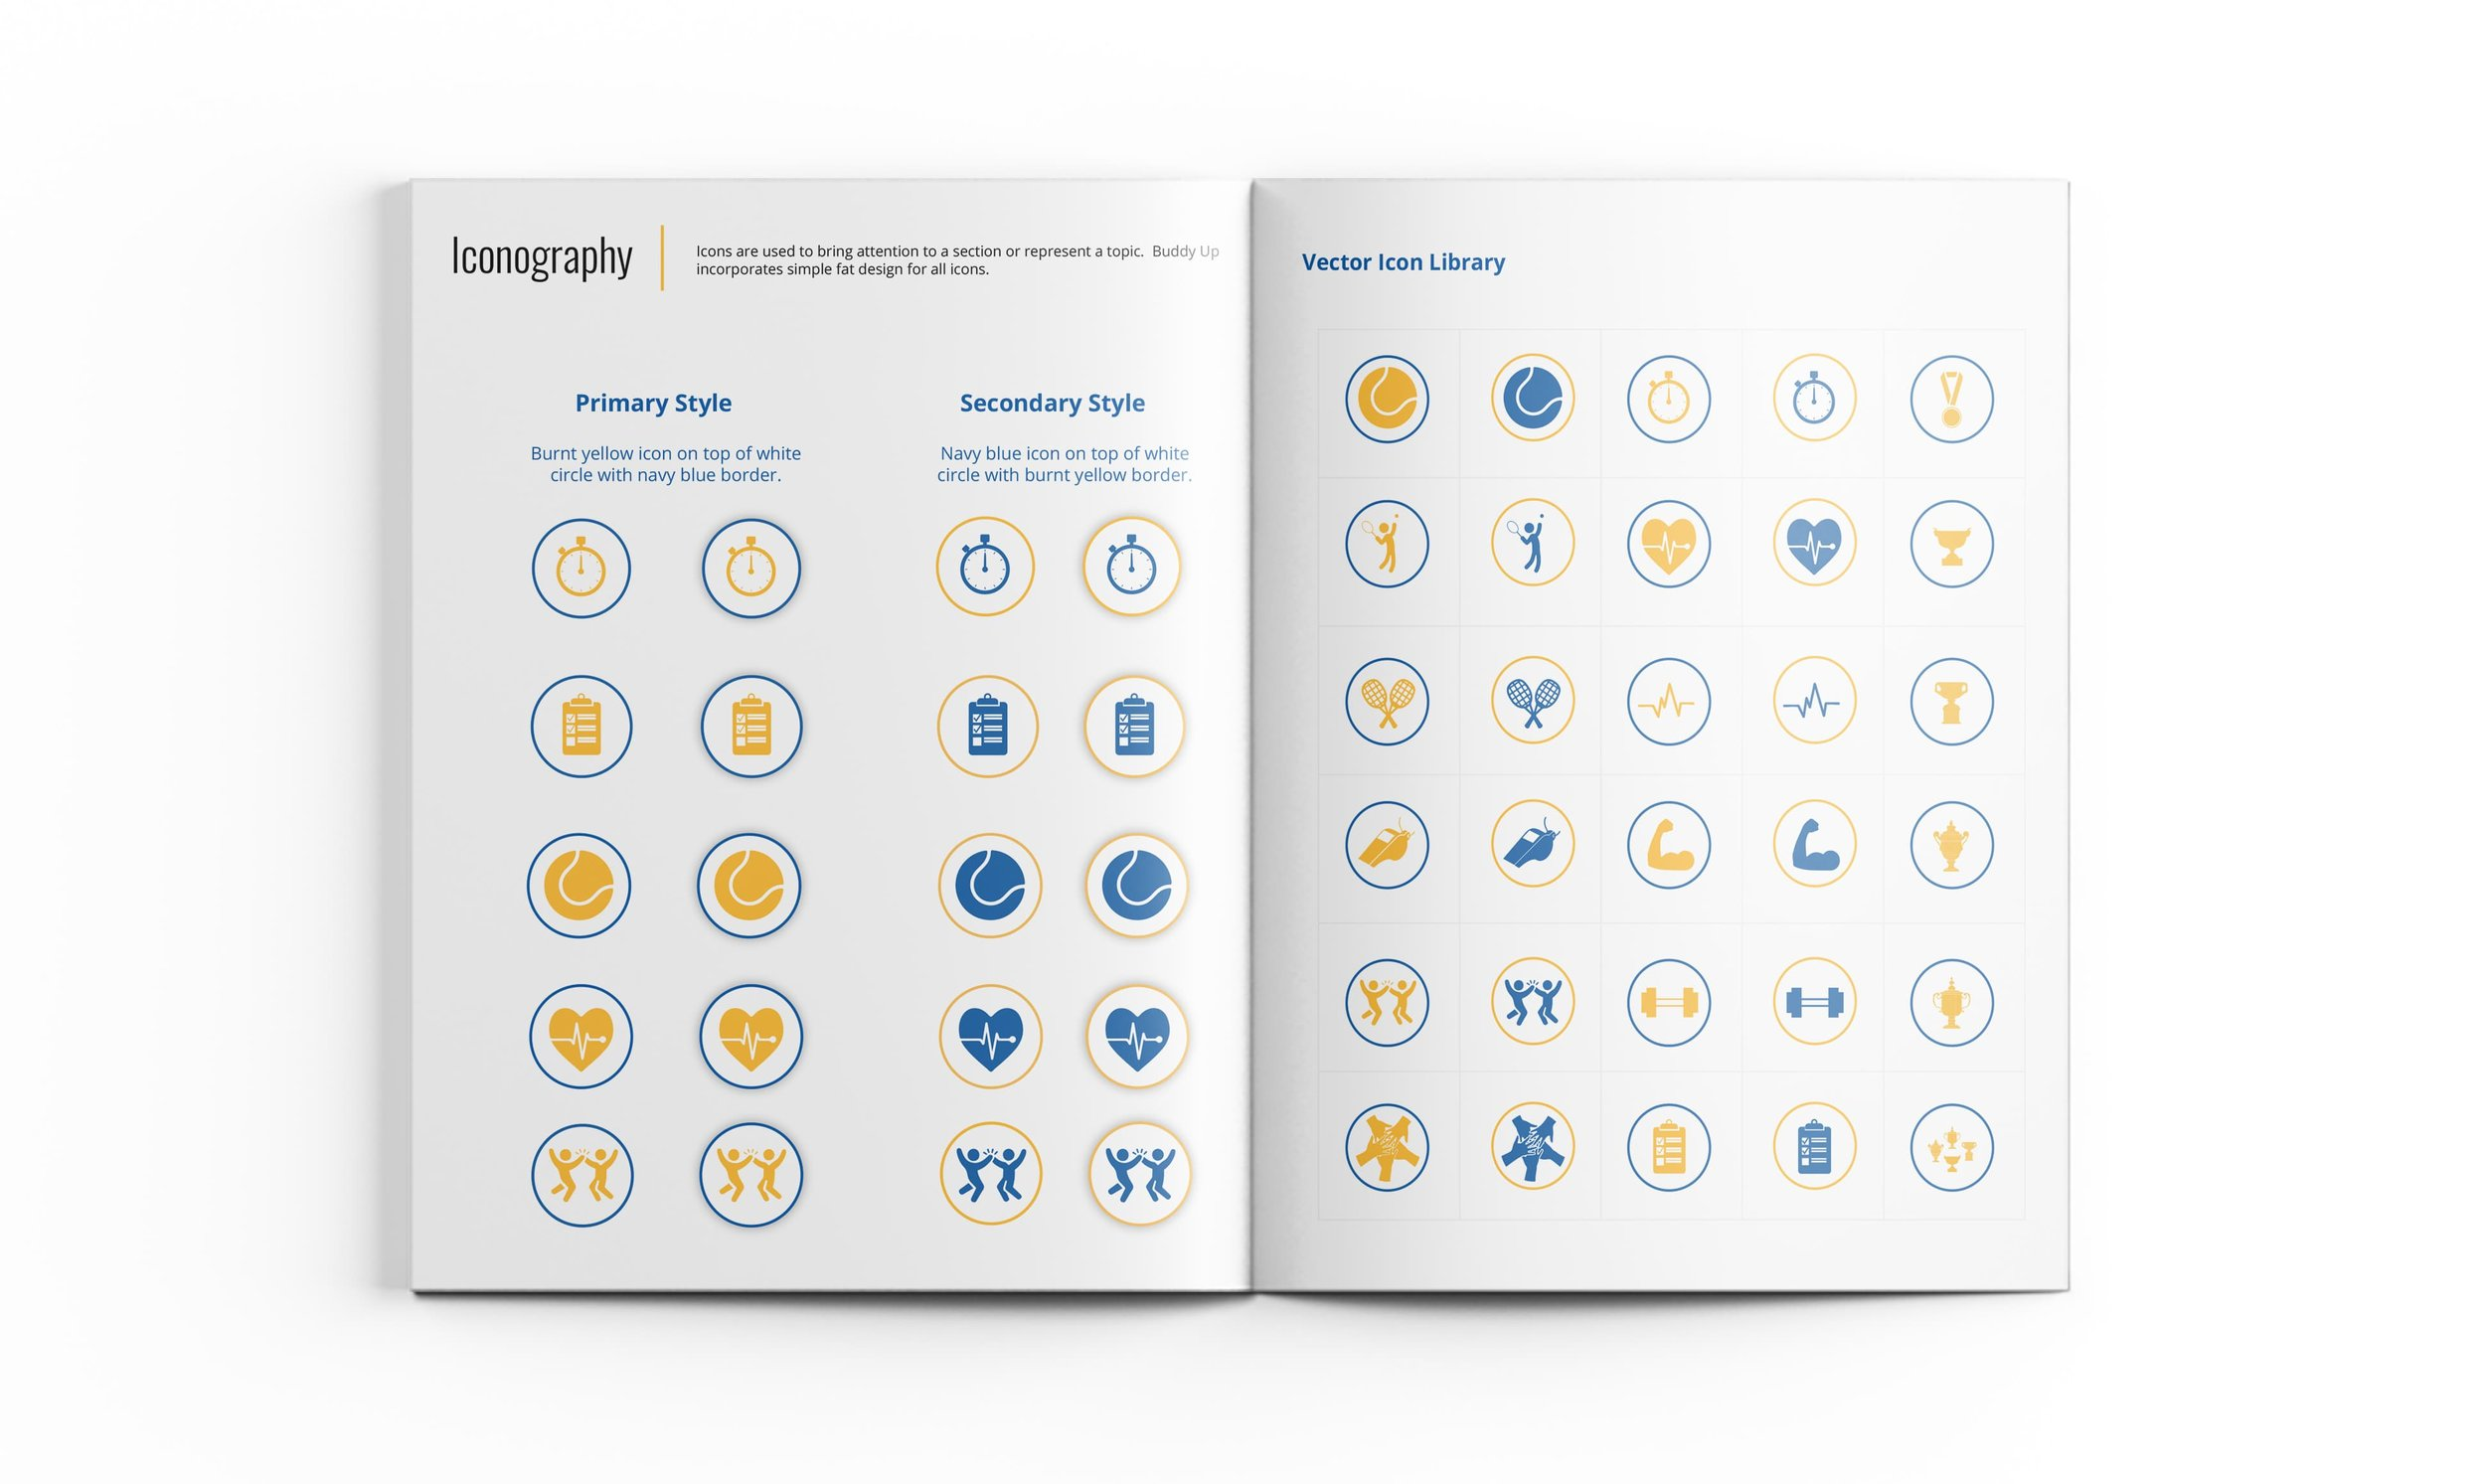 Buddy Up Tennis Brand Guide Mockup – Inside Iconography Pages.jpg